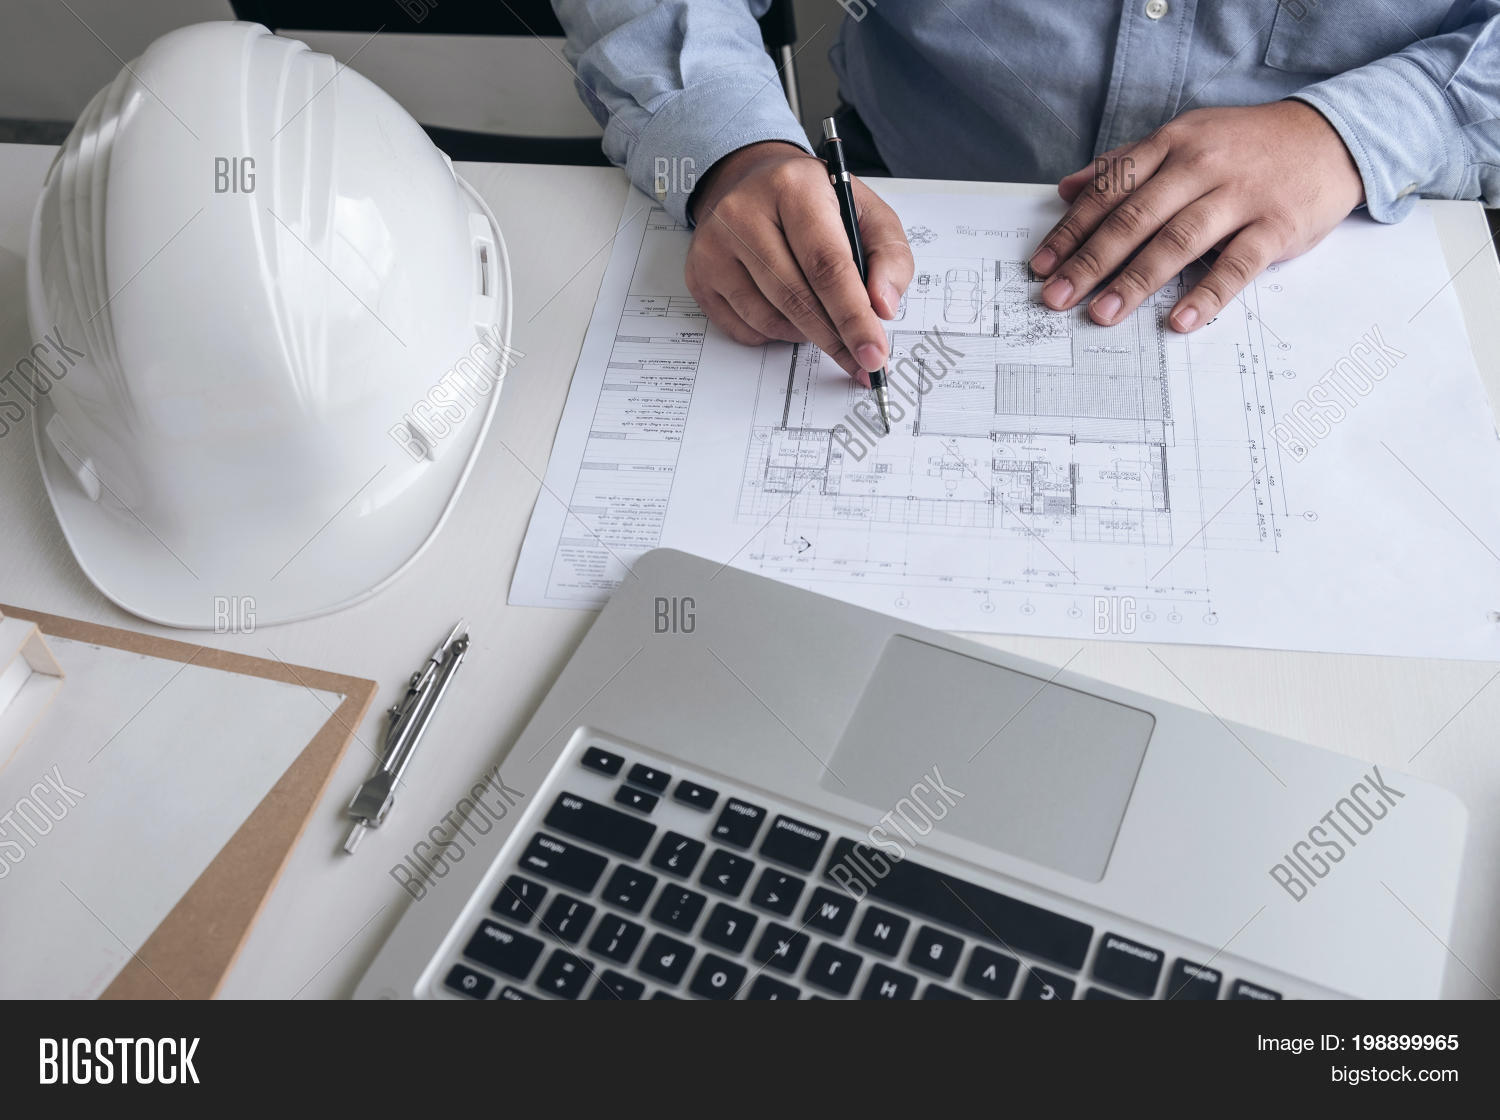 Engineering creative architect image photo bigstock engineering or creative architect in construction project engineers hands working on construction blueprint and building model malvernweather Gallery